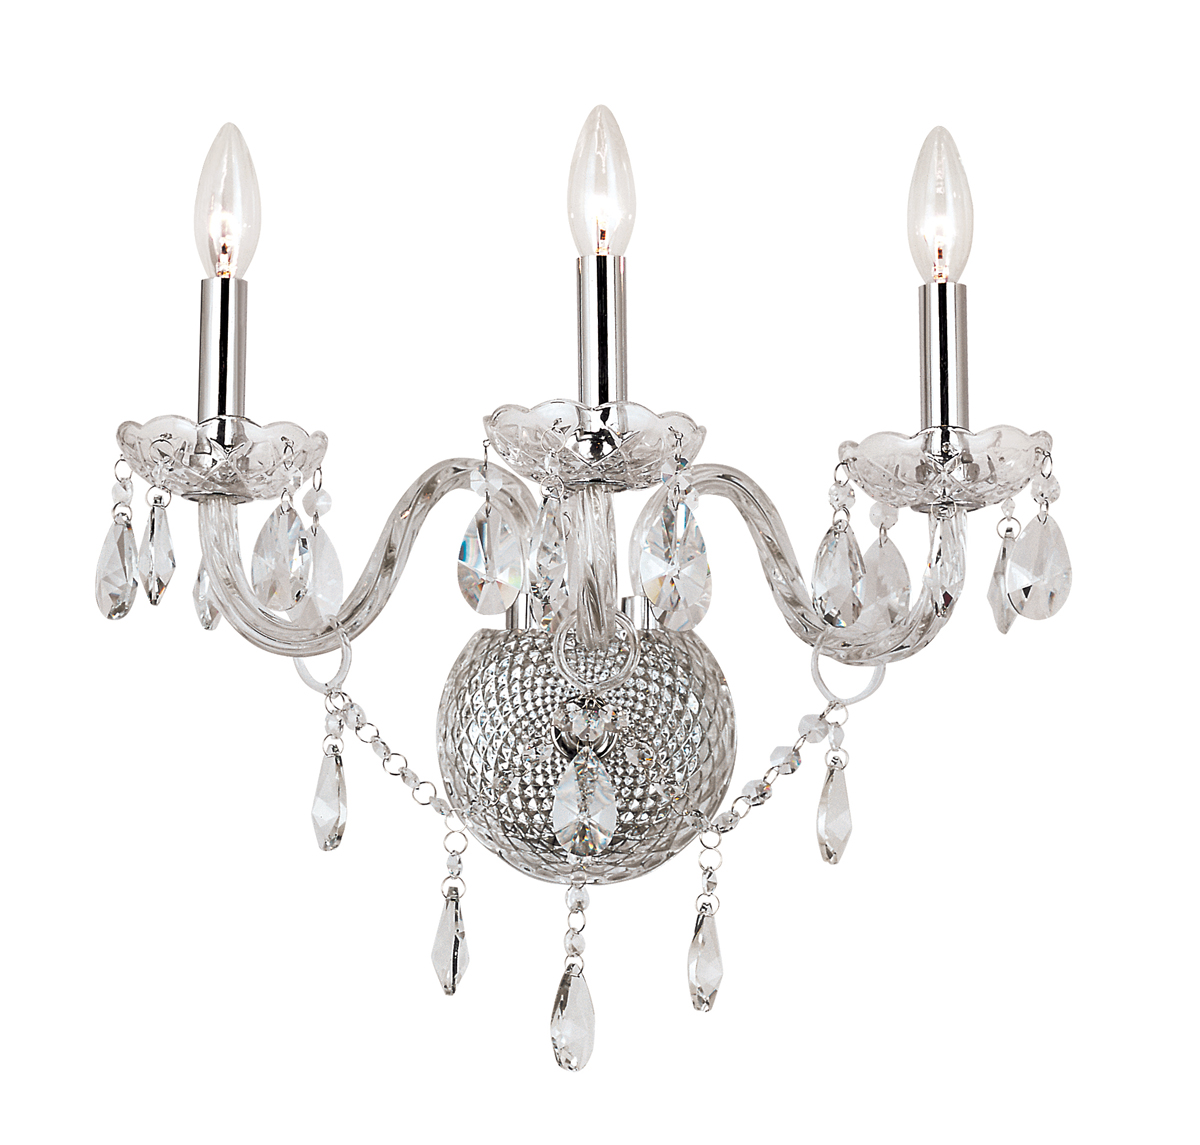 20   250 Volt Nema L6 20r Receptacle in addition Kitchen Cabi  Pull Out Organizers moreover Tgl Trans Globe Lighting Hu 3 Light Crystal Wall Sconce Hu 3 likewise Myda 69277 moreover Besa Lighting Nico 4 Pendant 6 Light Linear Fixture 6lp. on under cabinet puck lights